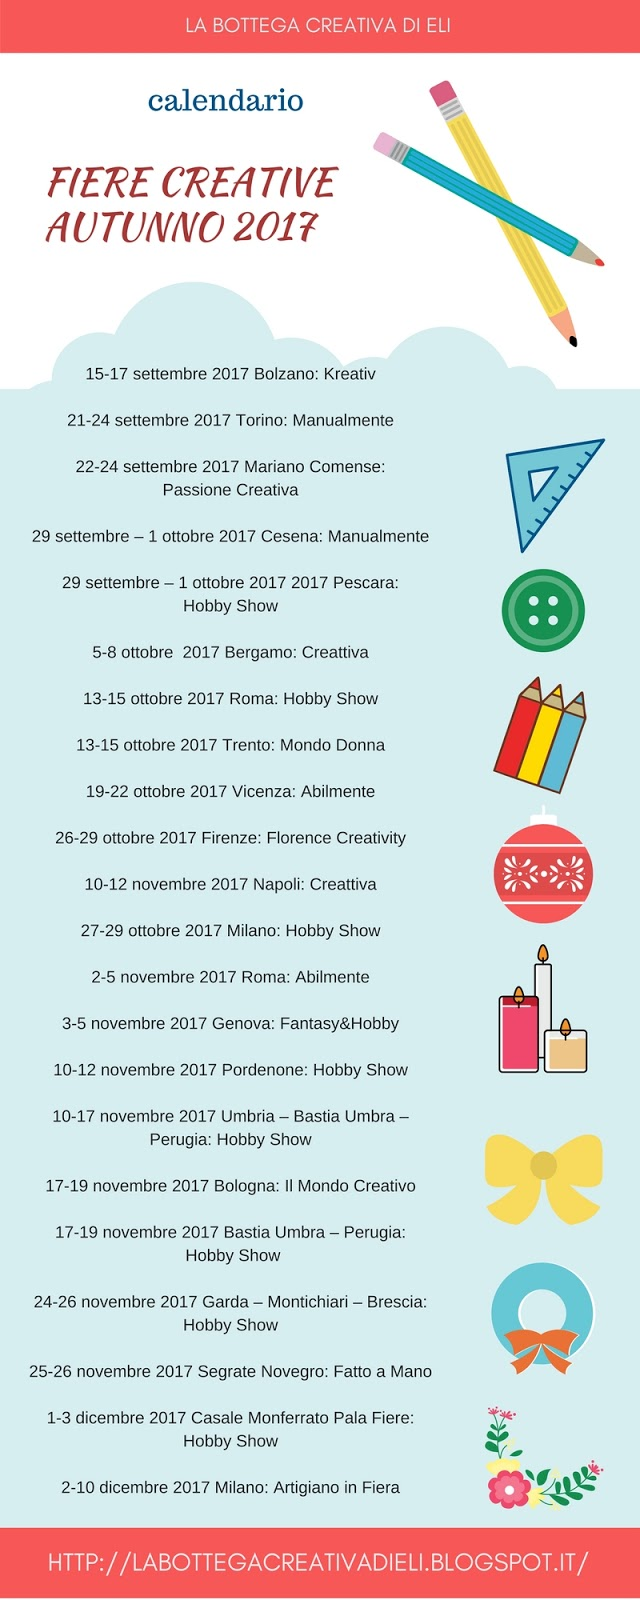 CALENDARIO FIERE CREATIVE AUTUNNO 2017